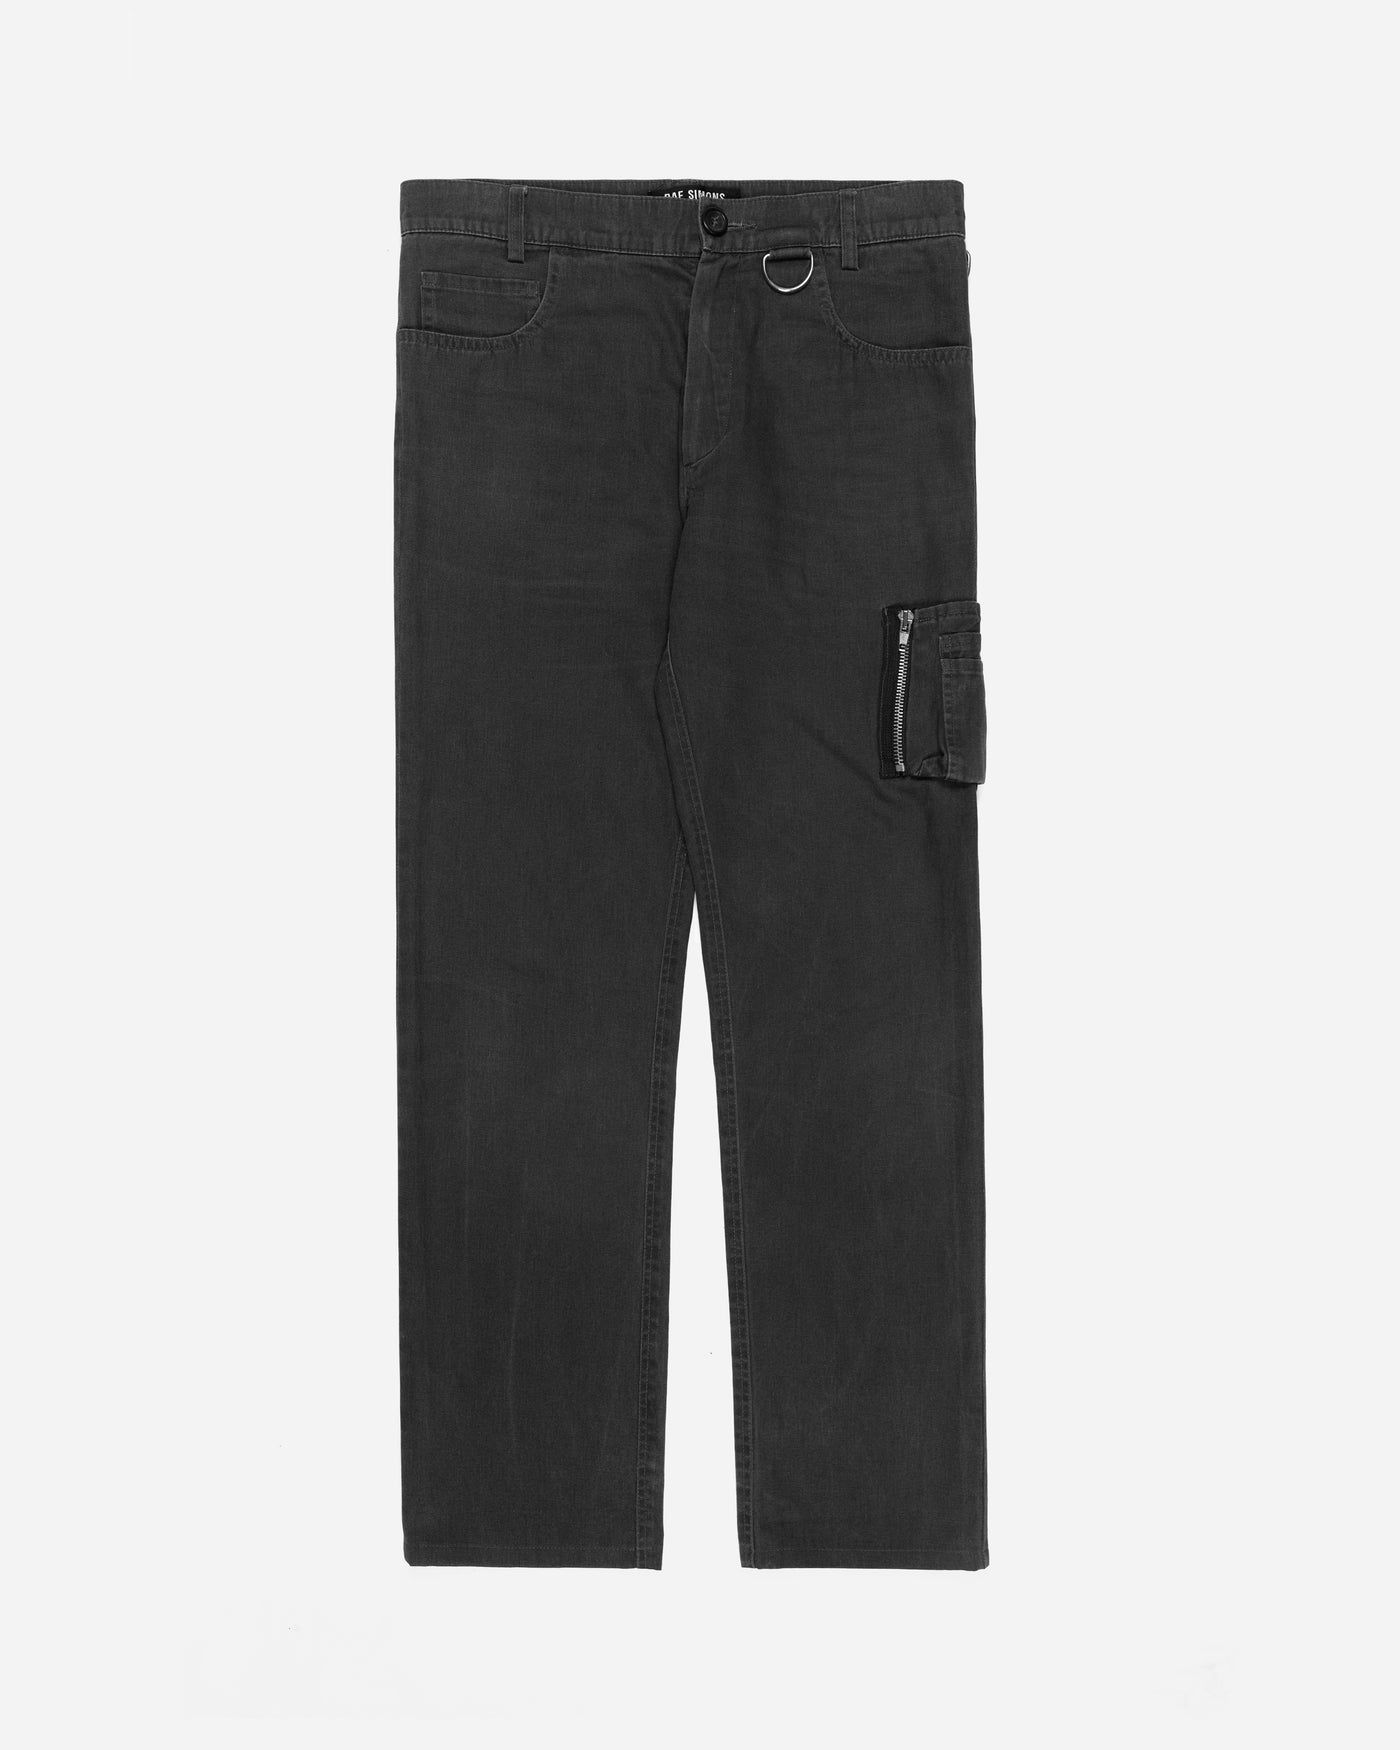 "Raf Simons Charcoal Grey Cargo Pocket Pants - SS02 ""May The Circle Be Unbroken"""